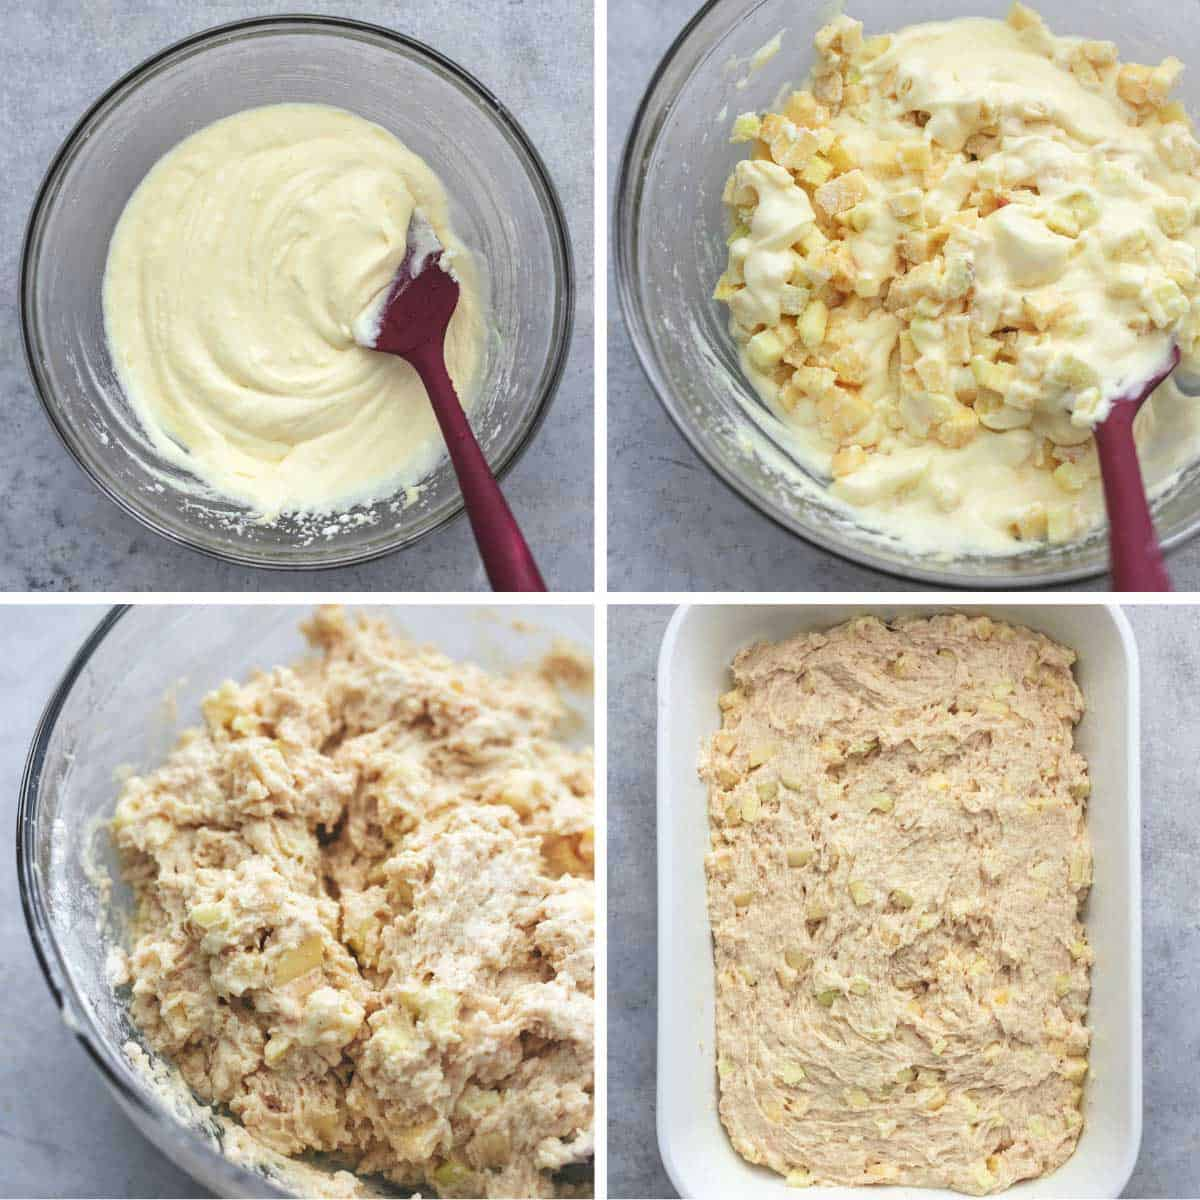 a collage of four images showing coffee cake batter being prepared